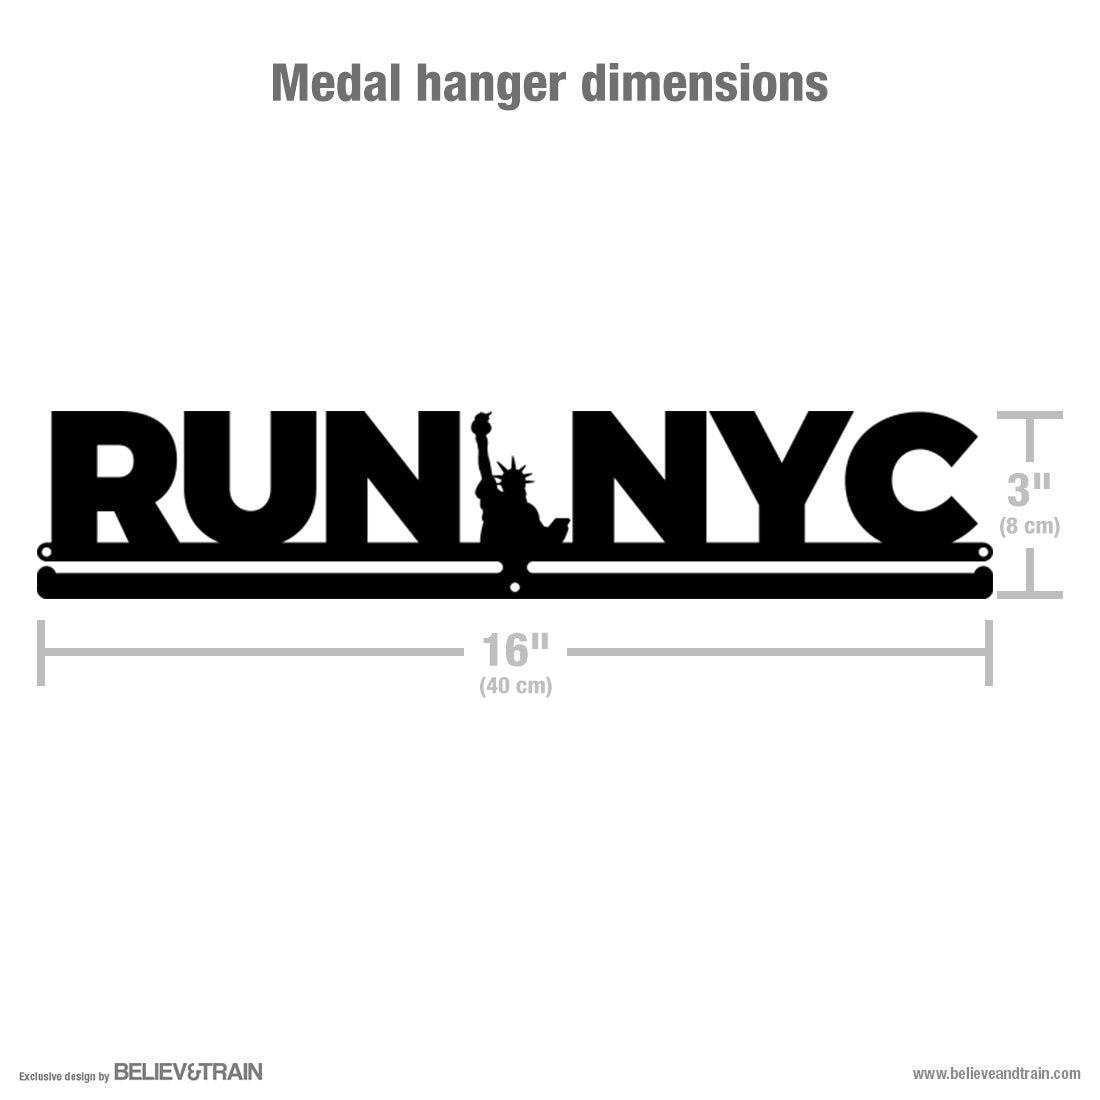 Run NYC - Running Medal Hanger